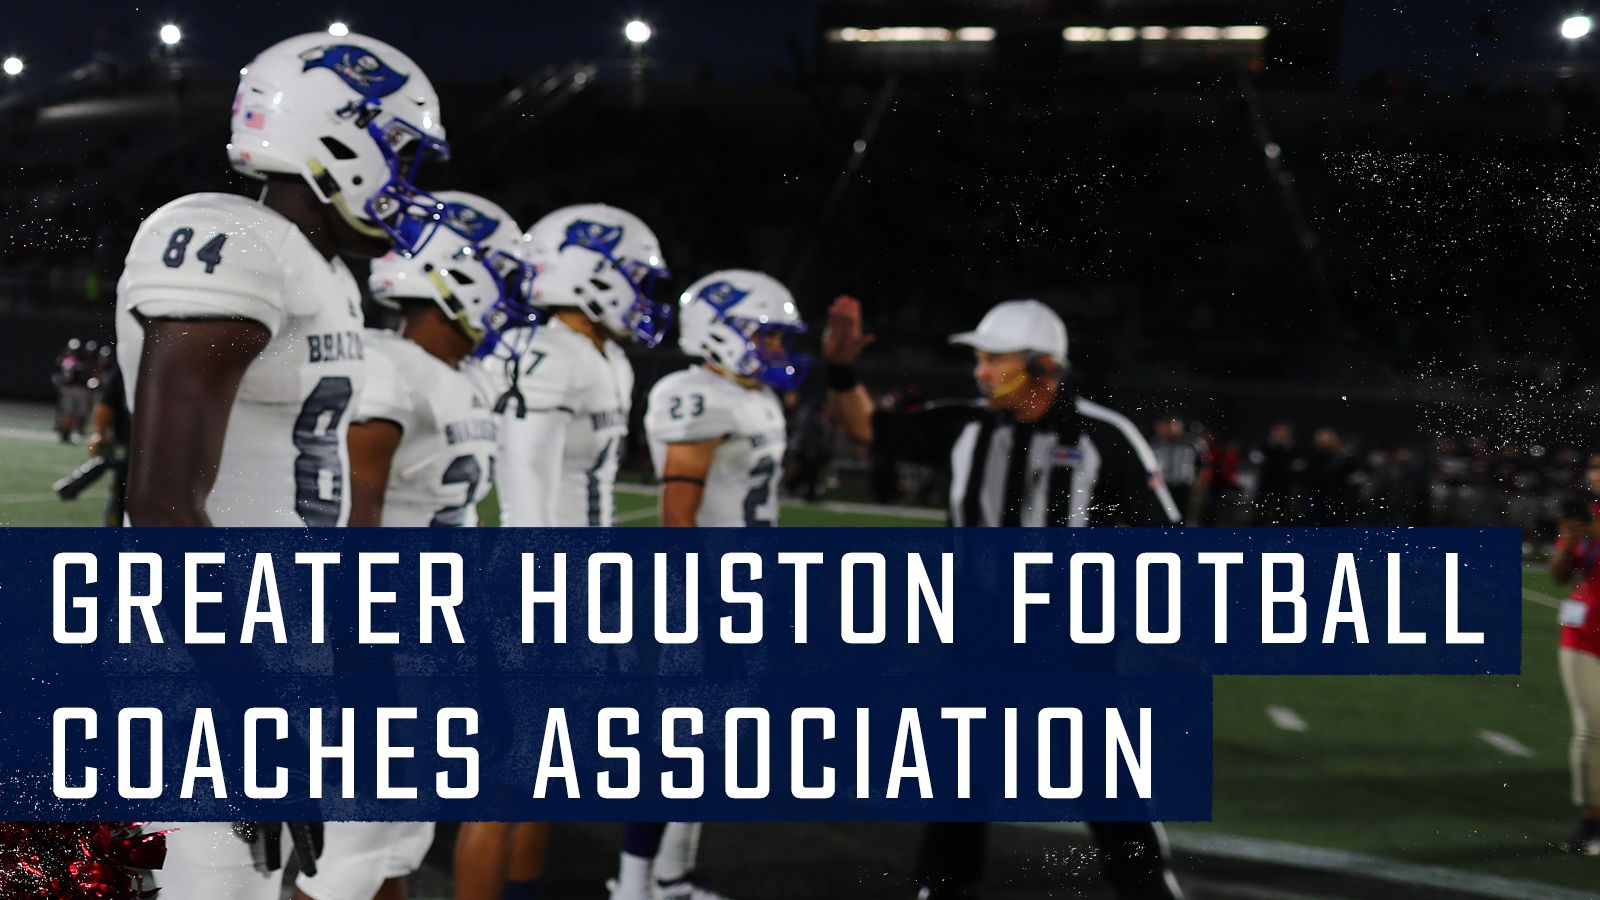 Greater Houston Football Coaches Association